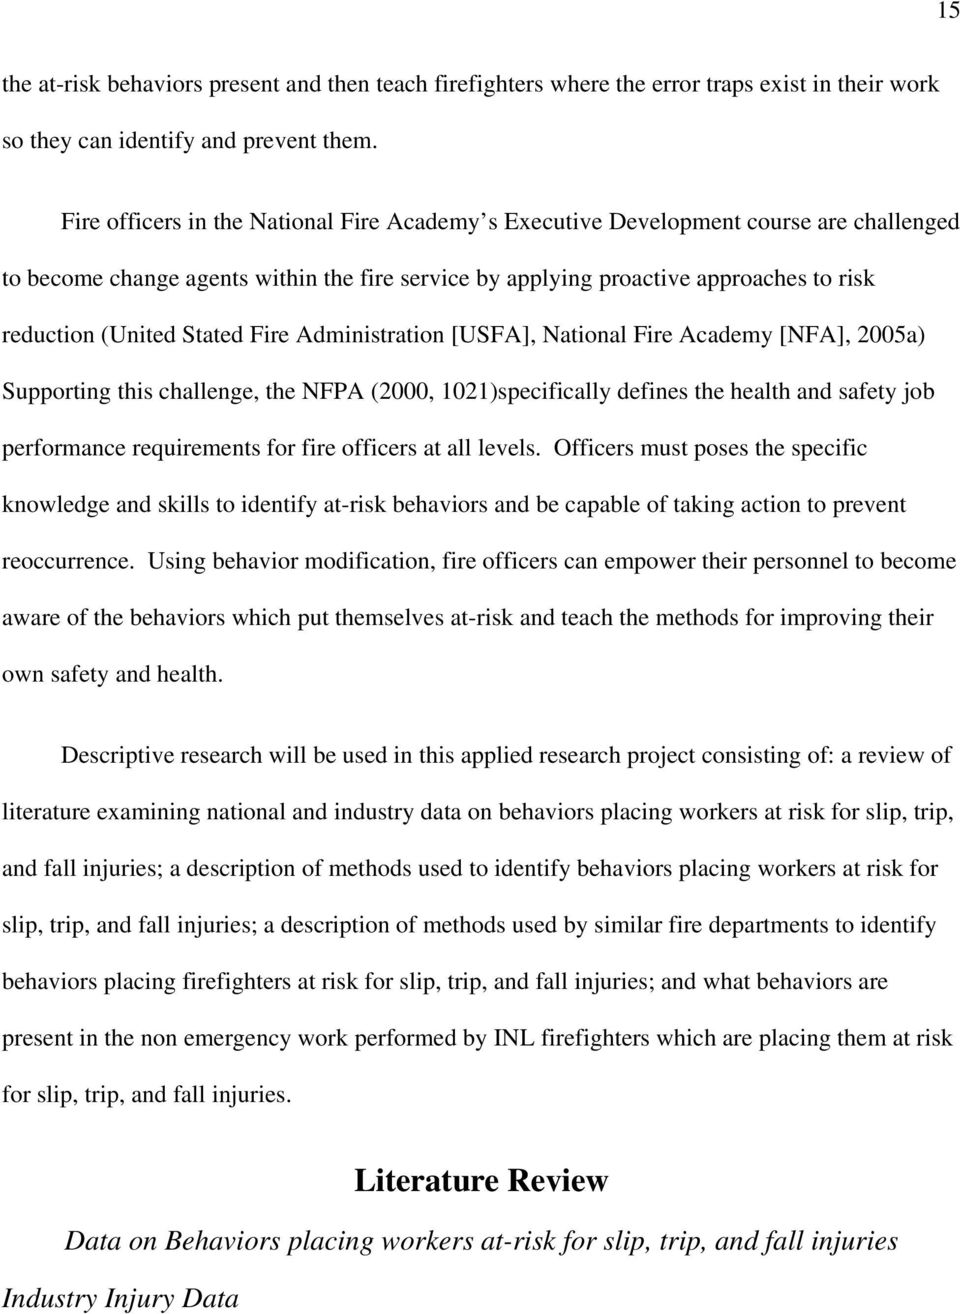 Stated Fire Administration [USFA], National Fire Academy [NFA], 2005a) Supporting this challenge, the NFPA (2000, 1021)specifically defines the health and safety job performance requirements for fire